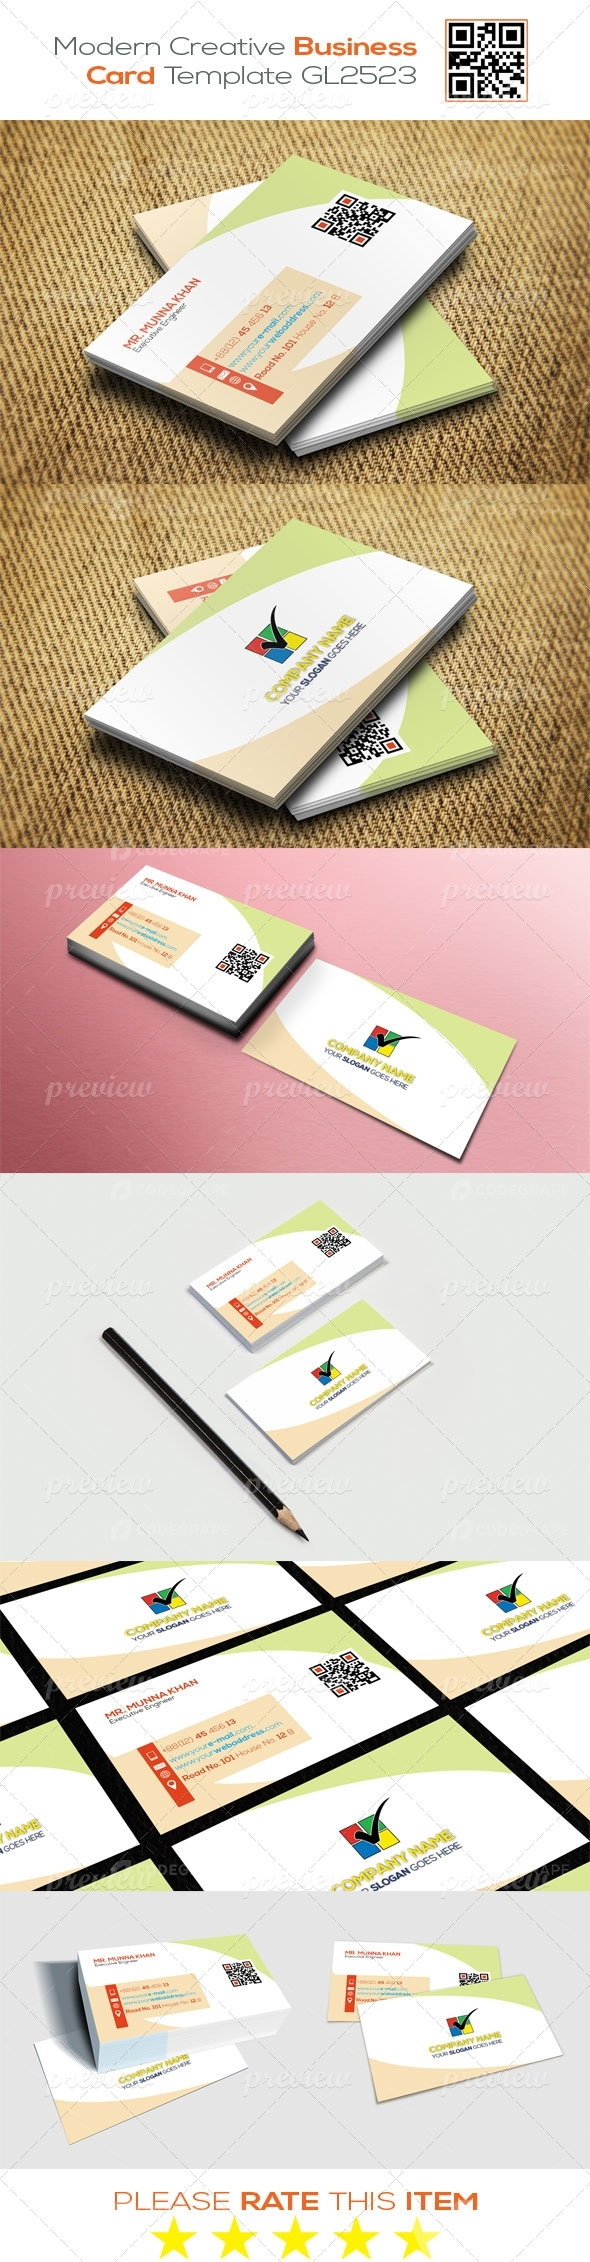 Modern Creative Business Card Template GL2523